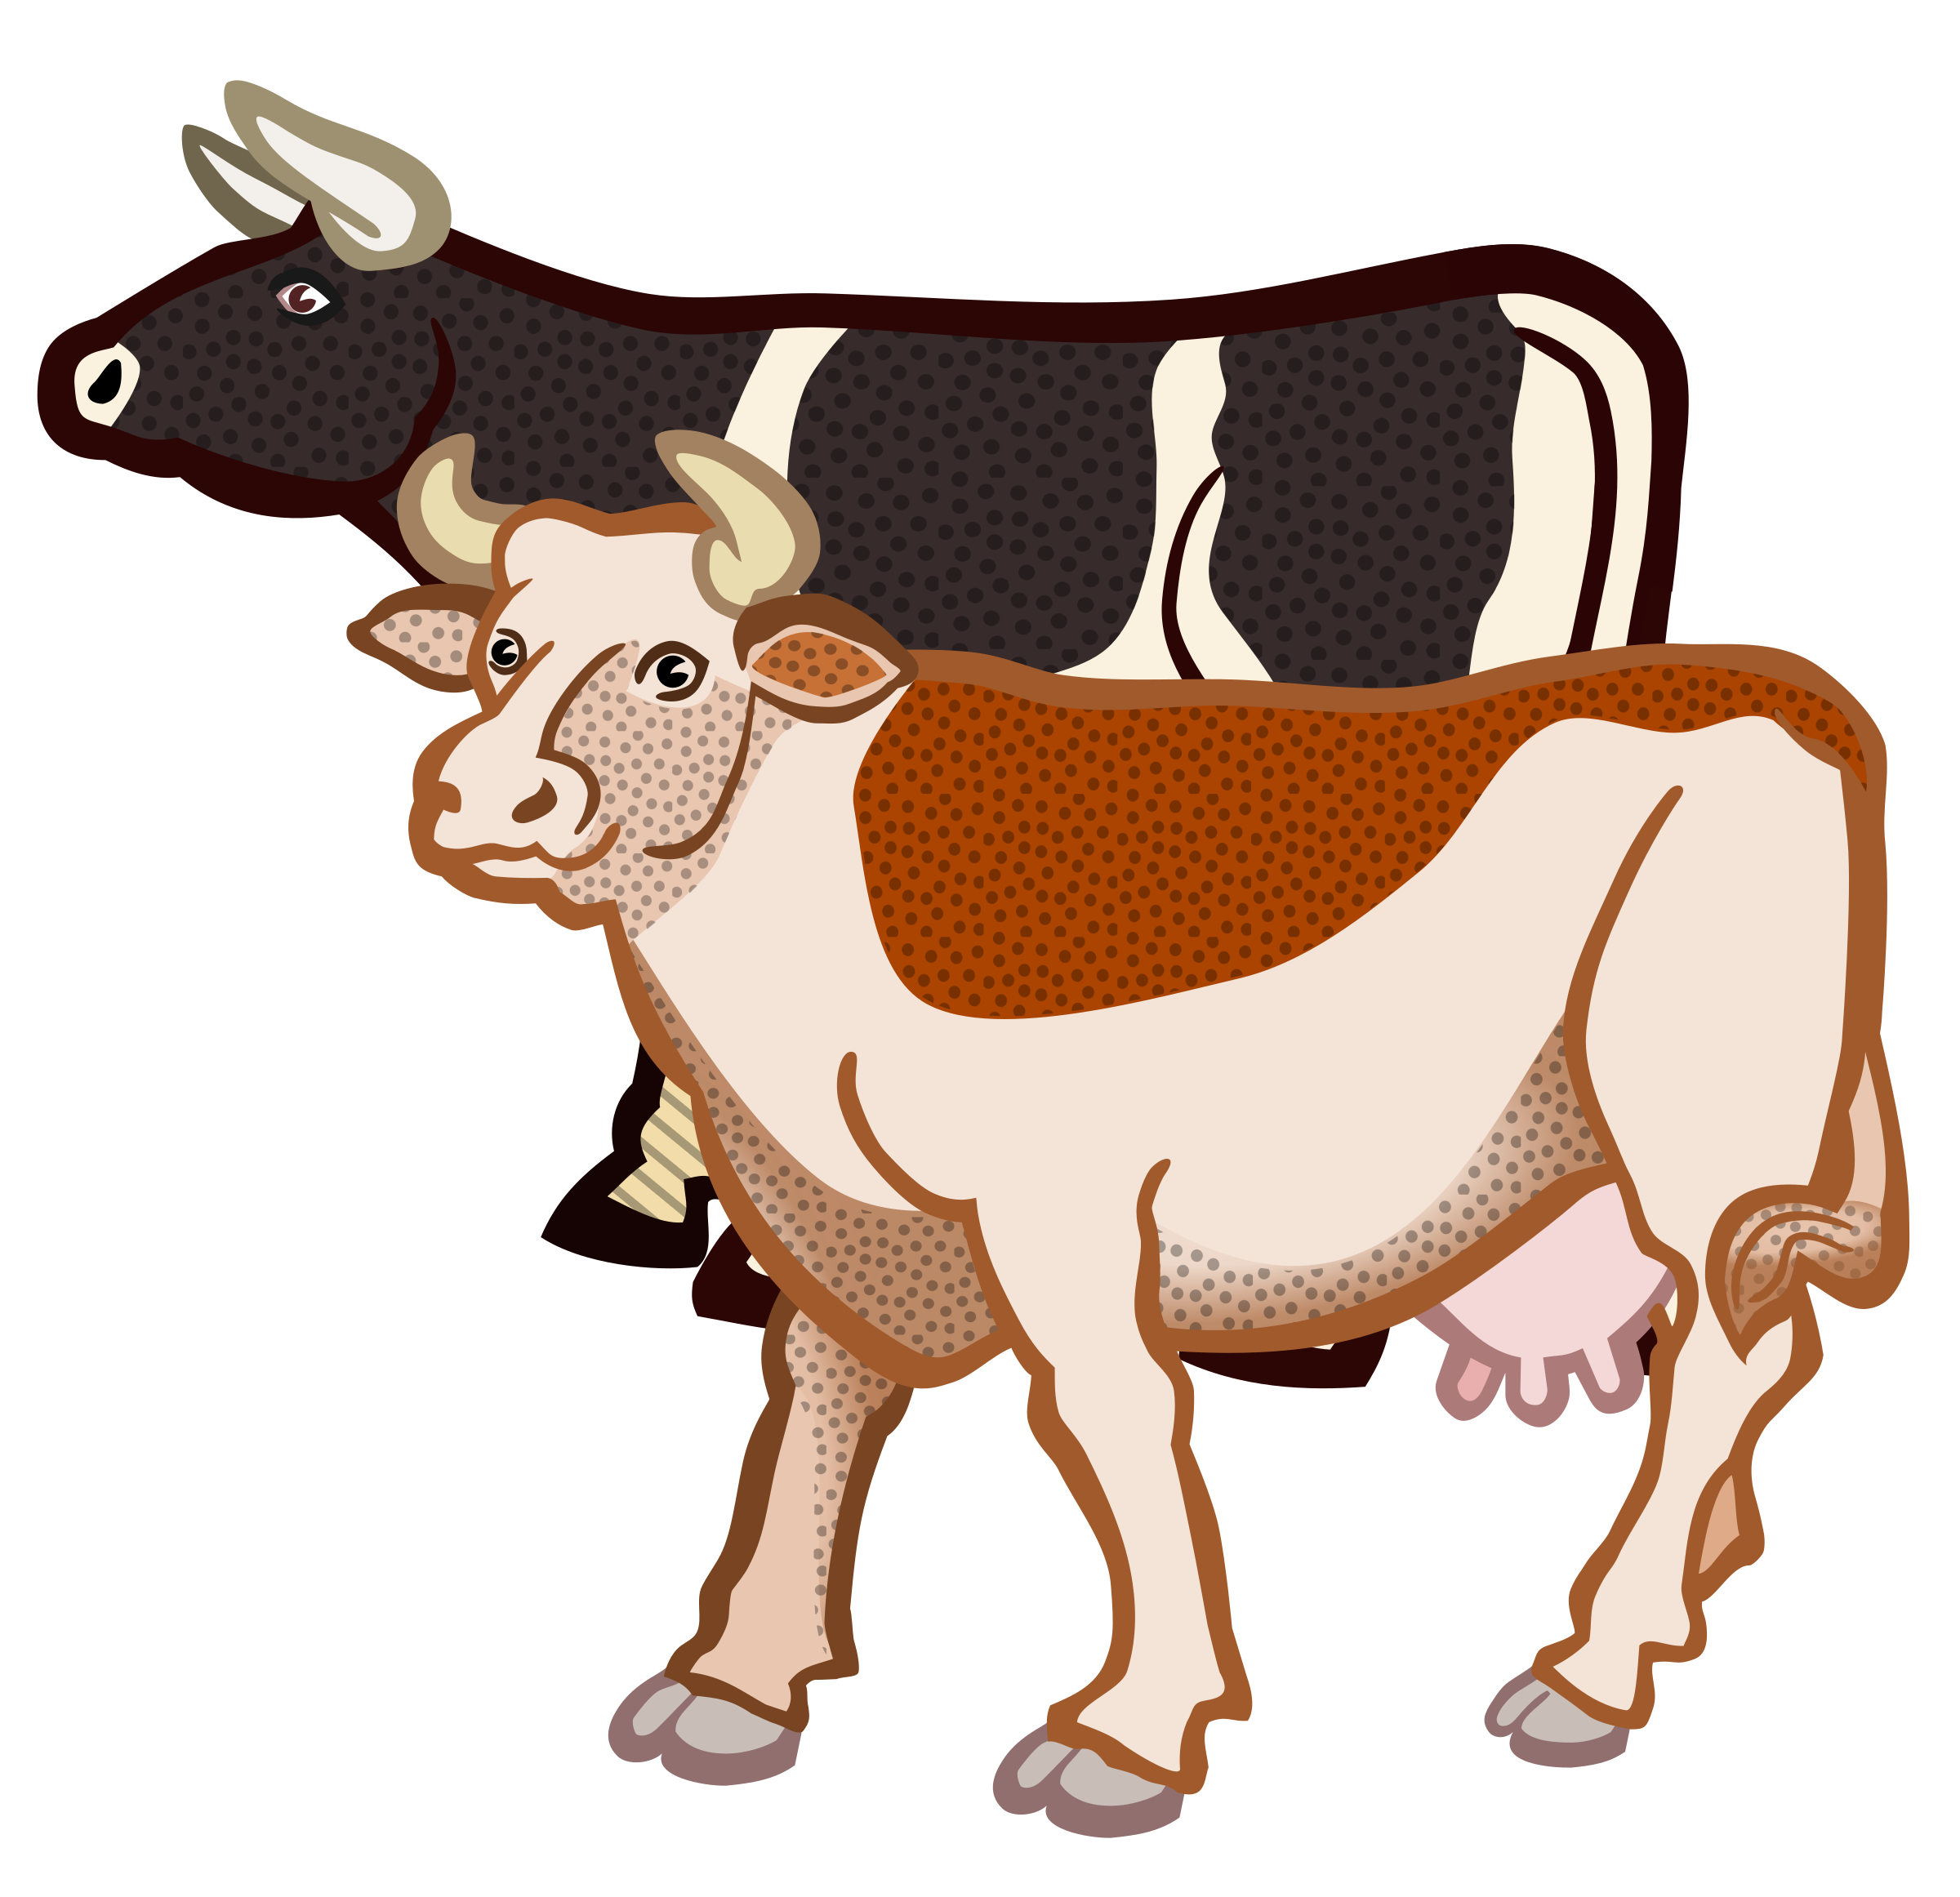 2 cows clipart vector transparent stock Two Cows Vector graphics image - Free stock photo - Public Domain ... vector transparent stock